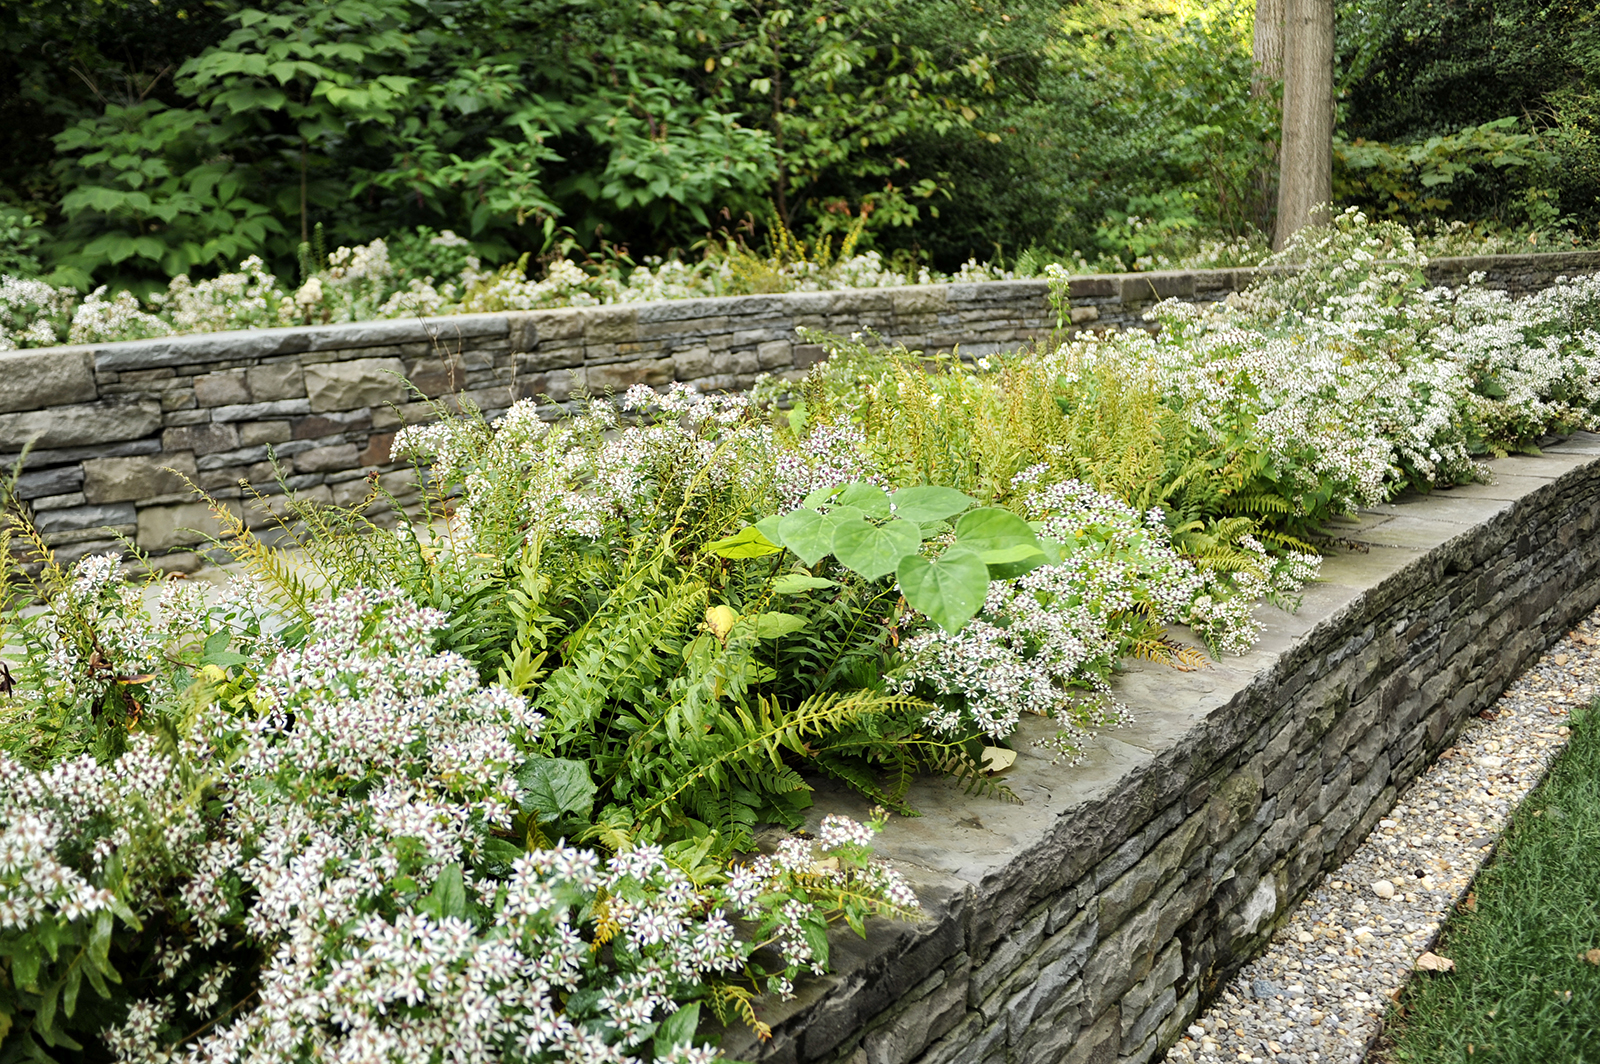 Aster divaricatus  and Christmas fern spill over bluestone walls at the National Cathedral in Washington D.C. by Michael Vergason. The planting offers a transitional border between the architectural space and the surrounding woodland.